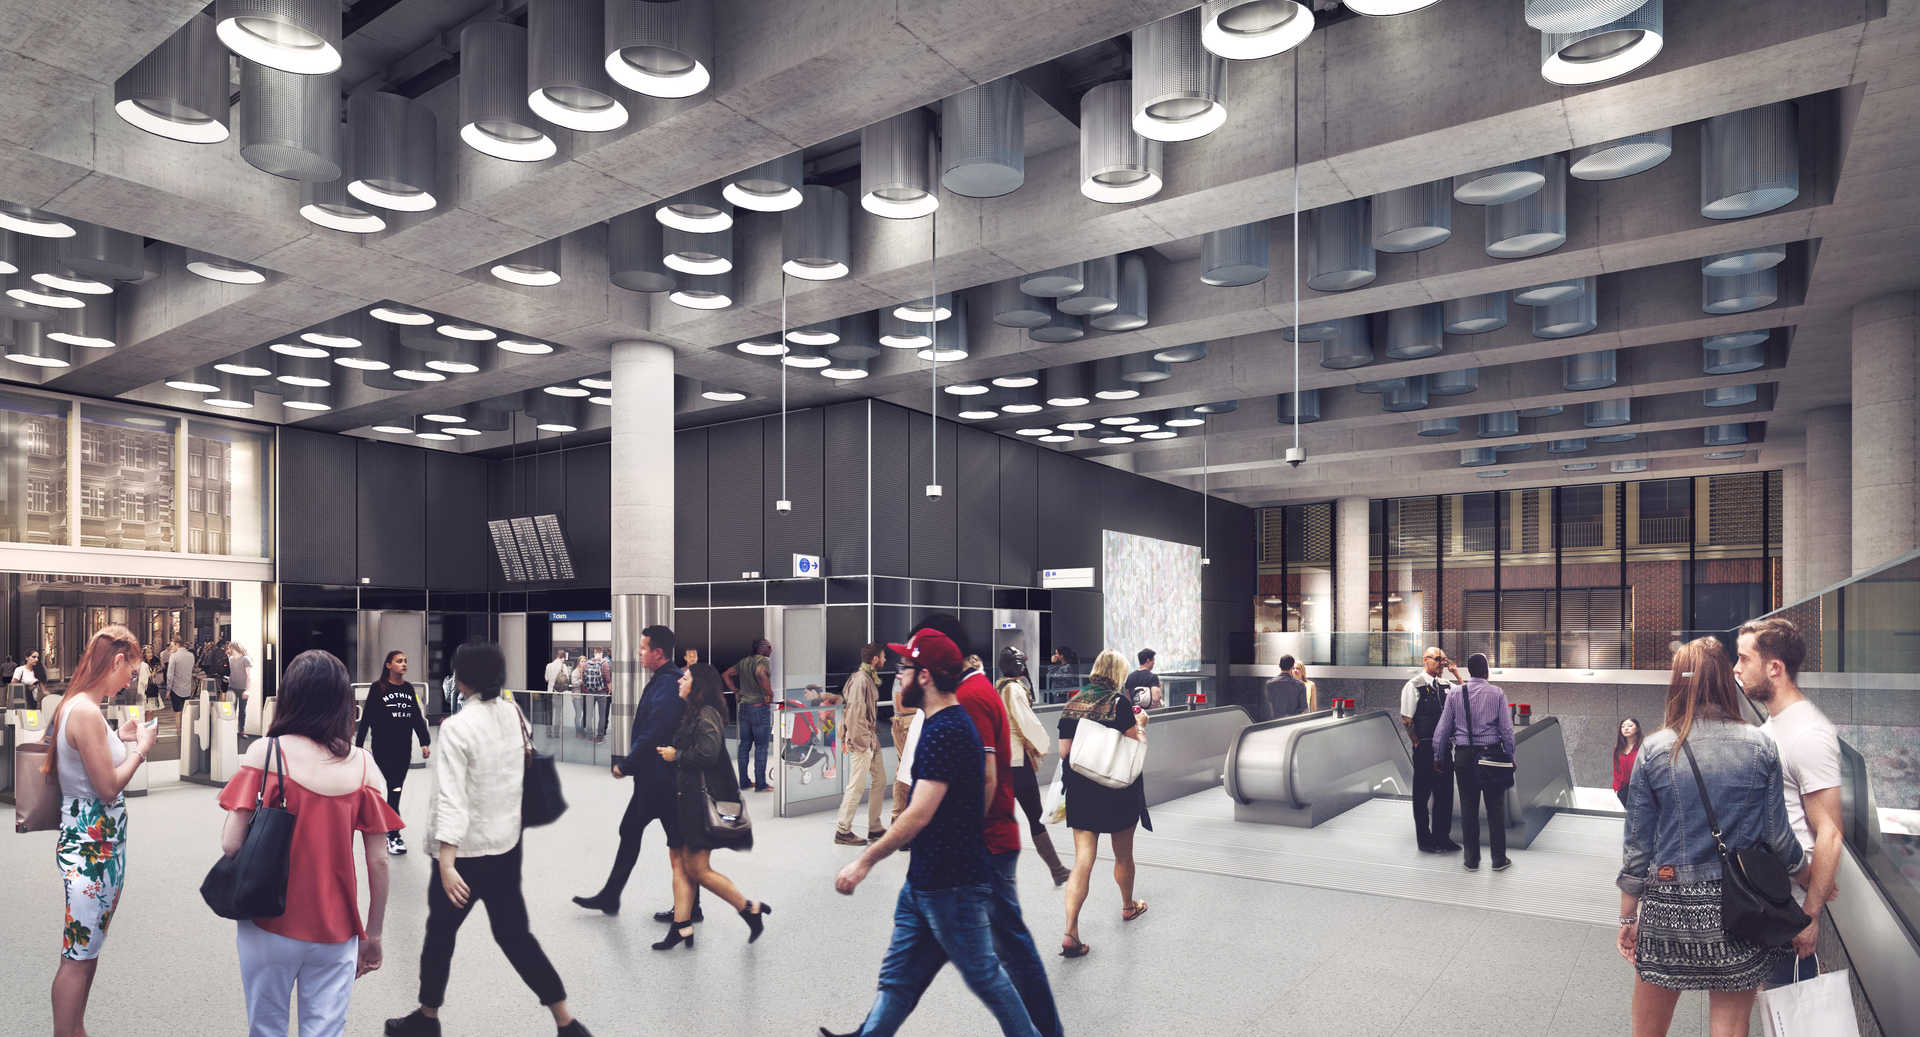 03 Tottenham Court Road station - proposed ticket hall at Dean Street_236017